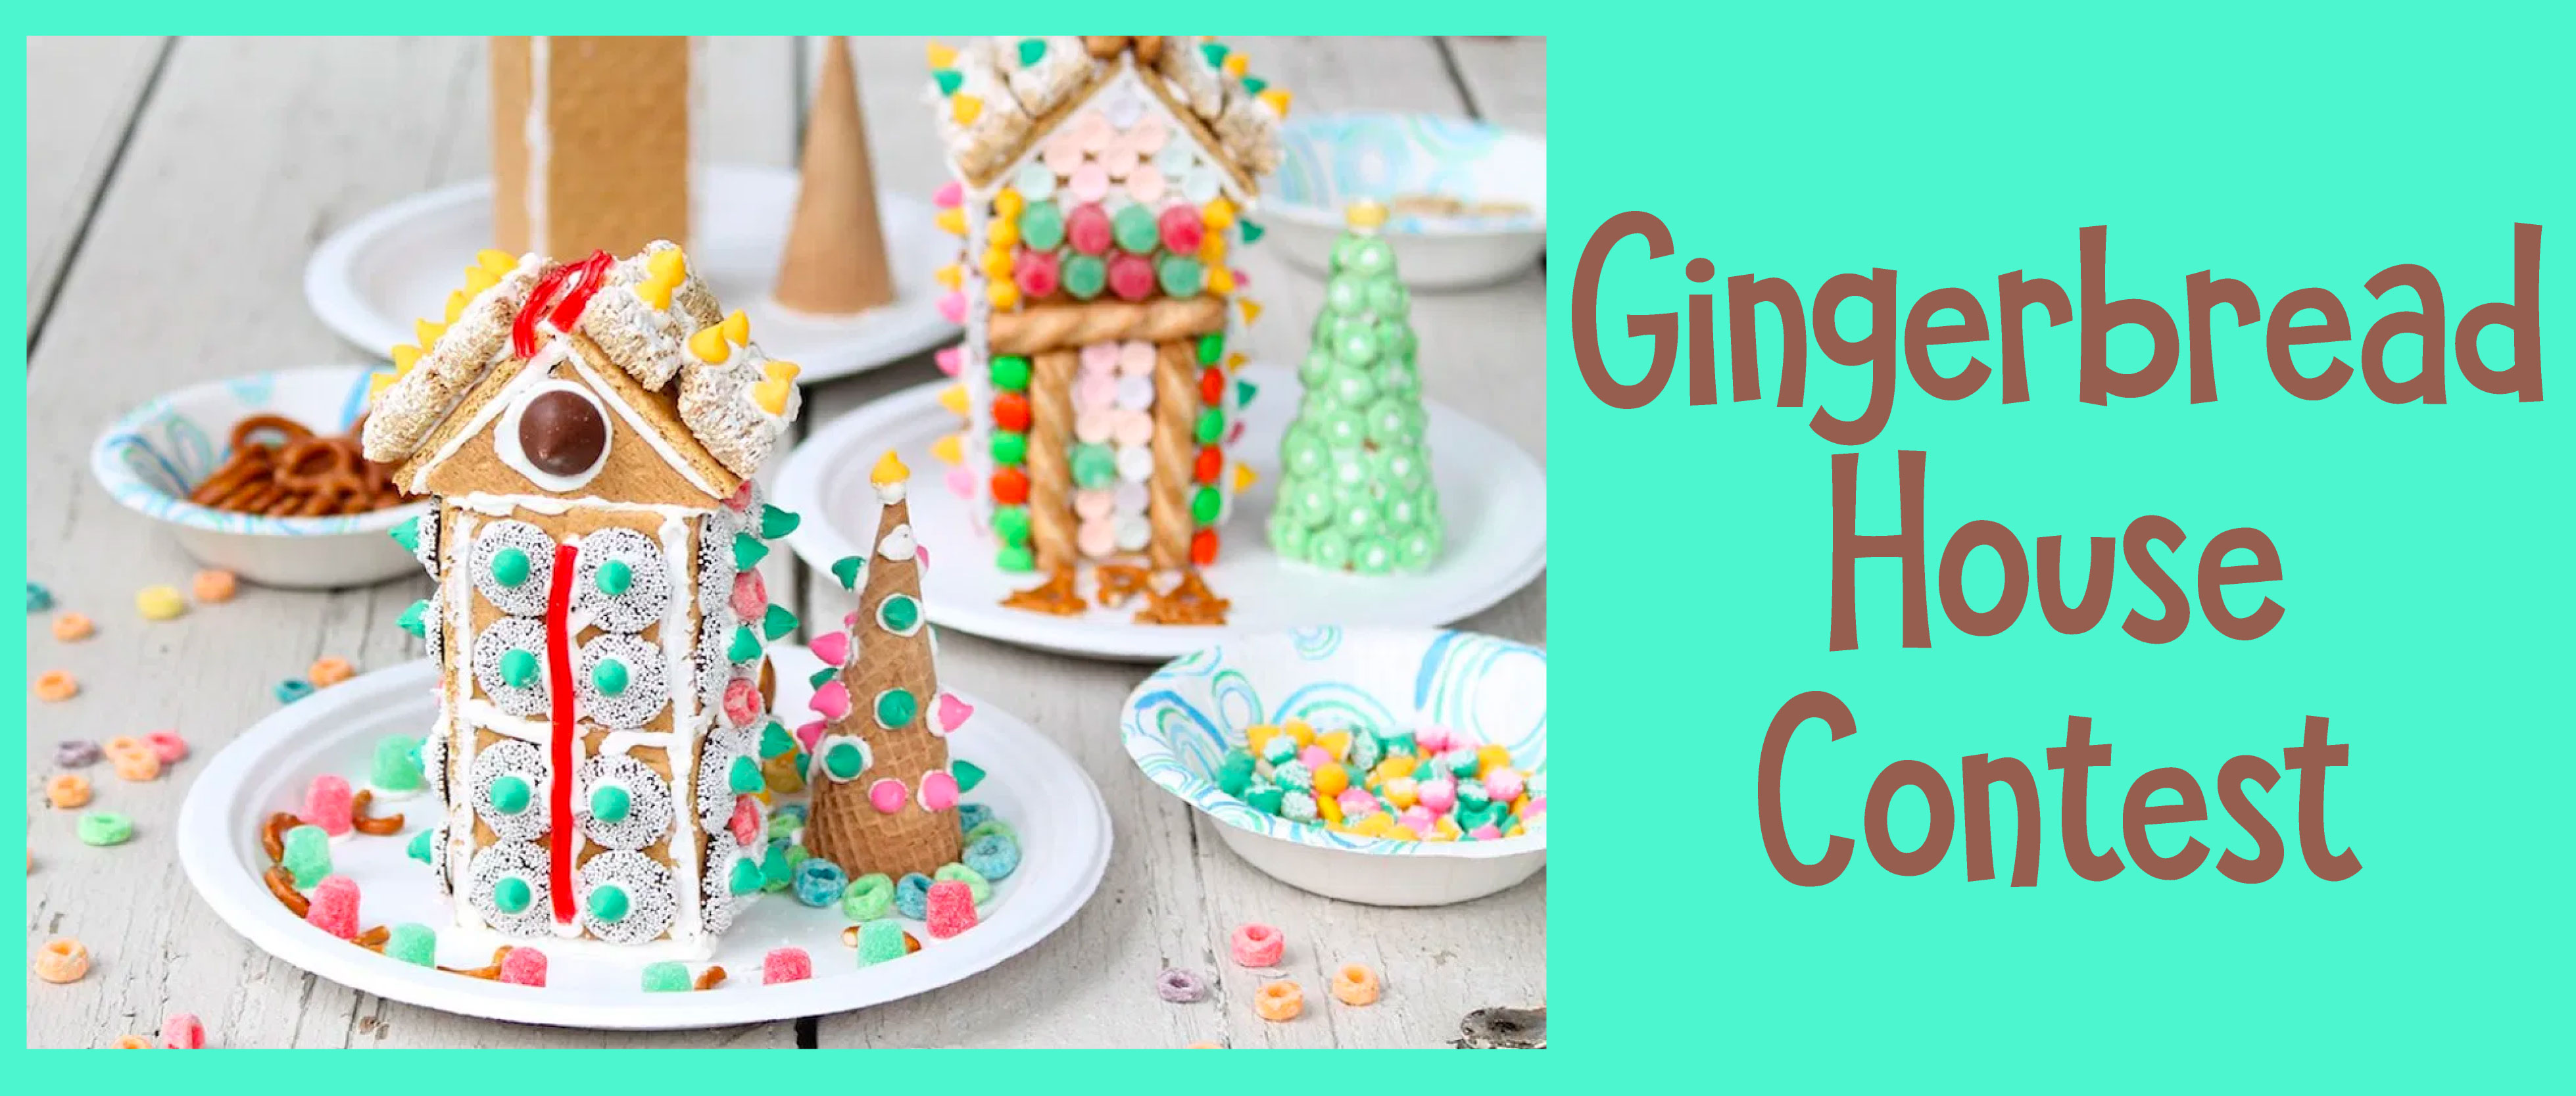 gingerbread-house-contest-wp